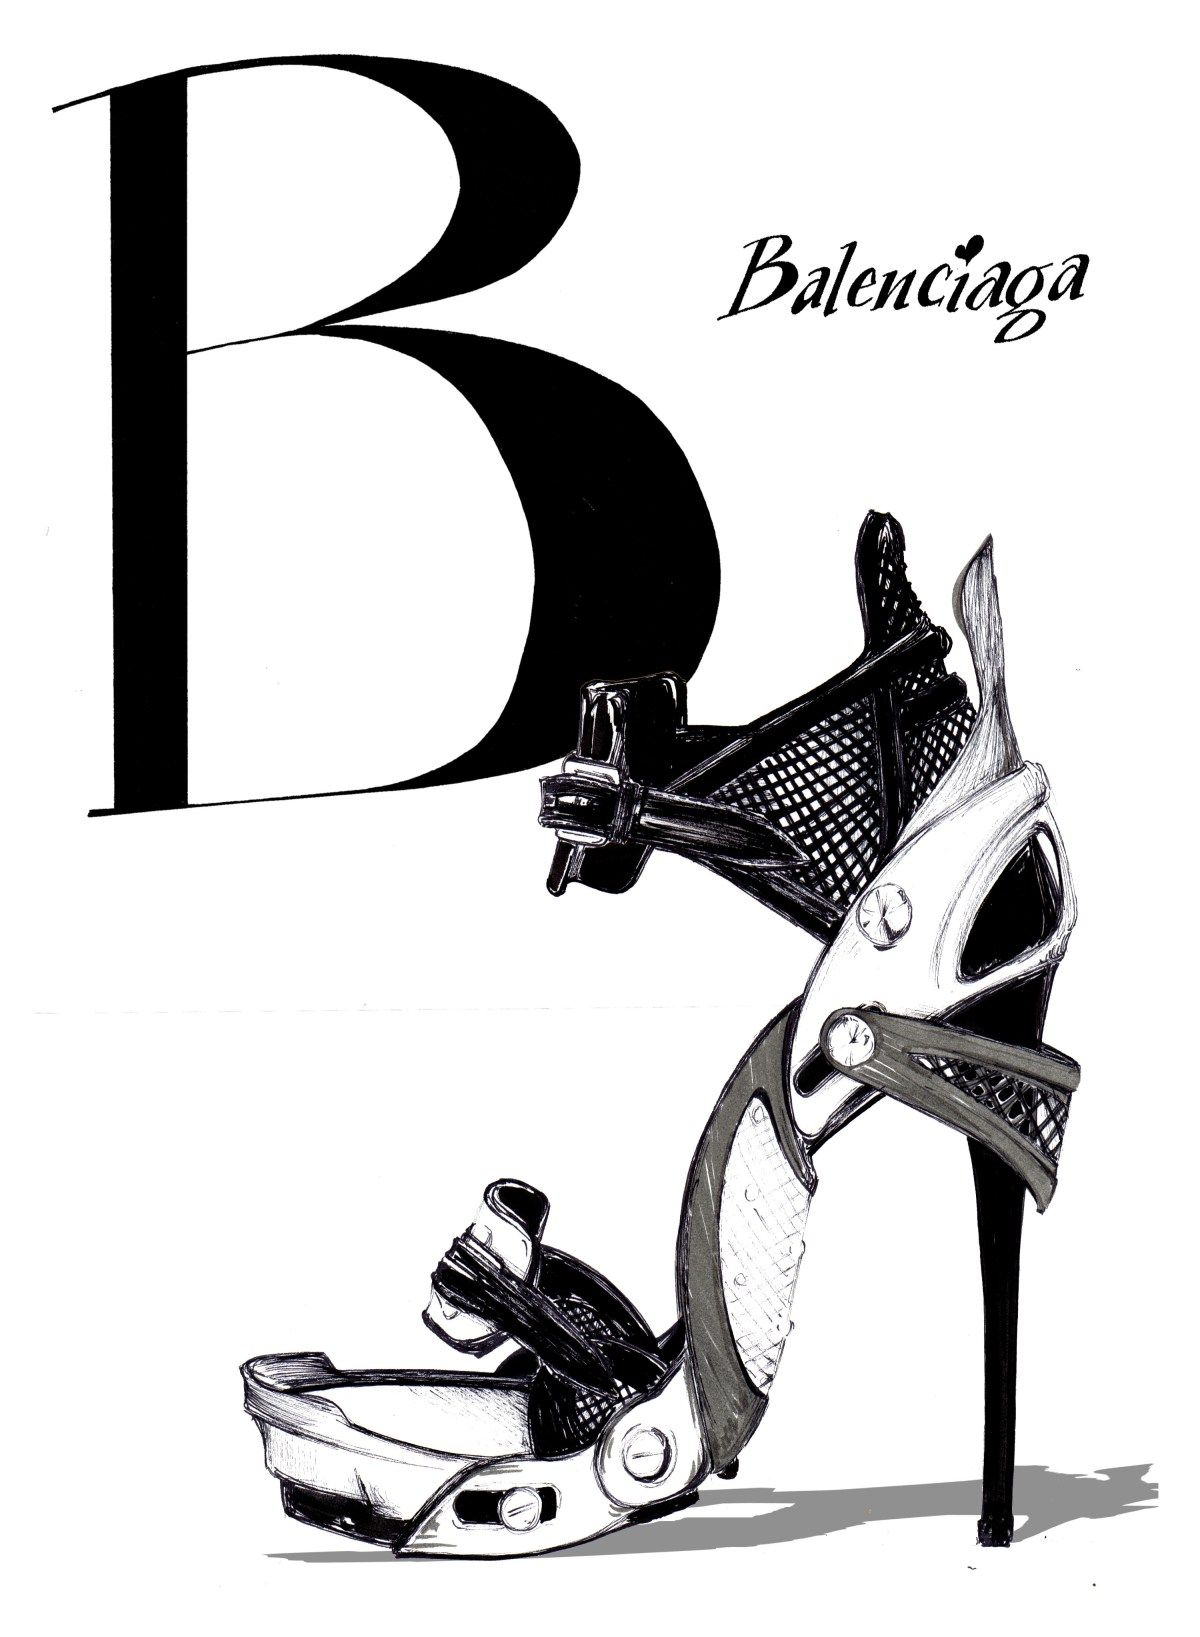 B is for Balenciaga